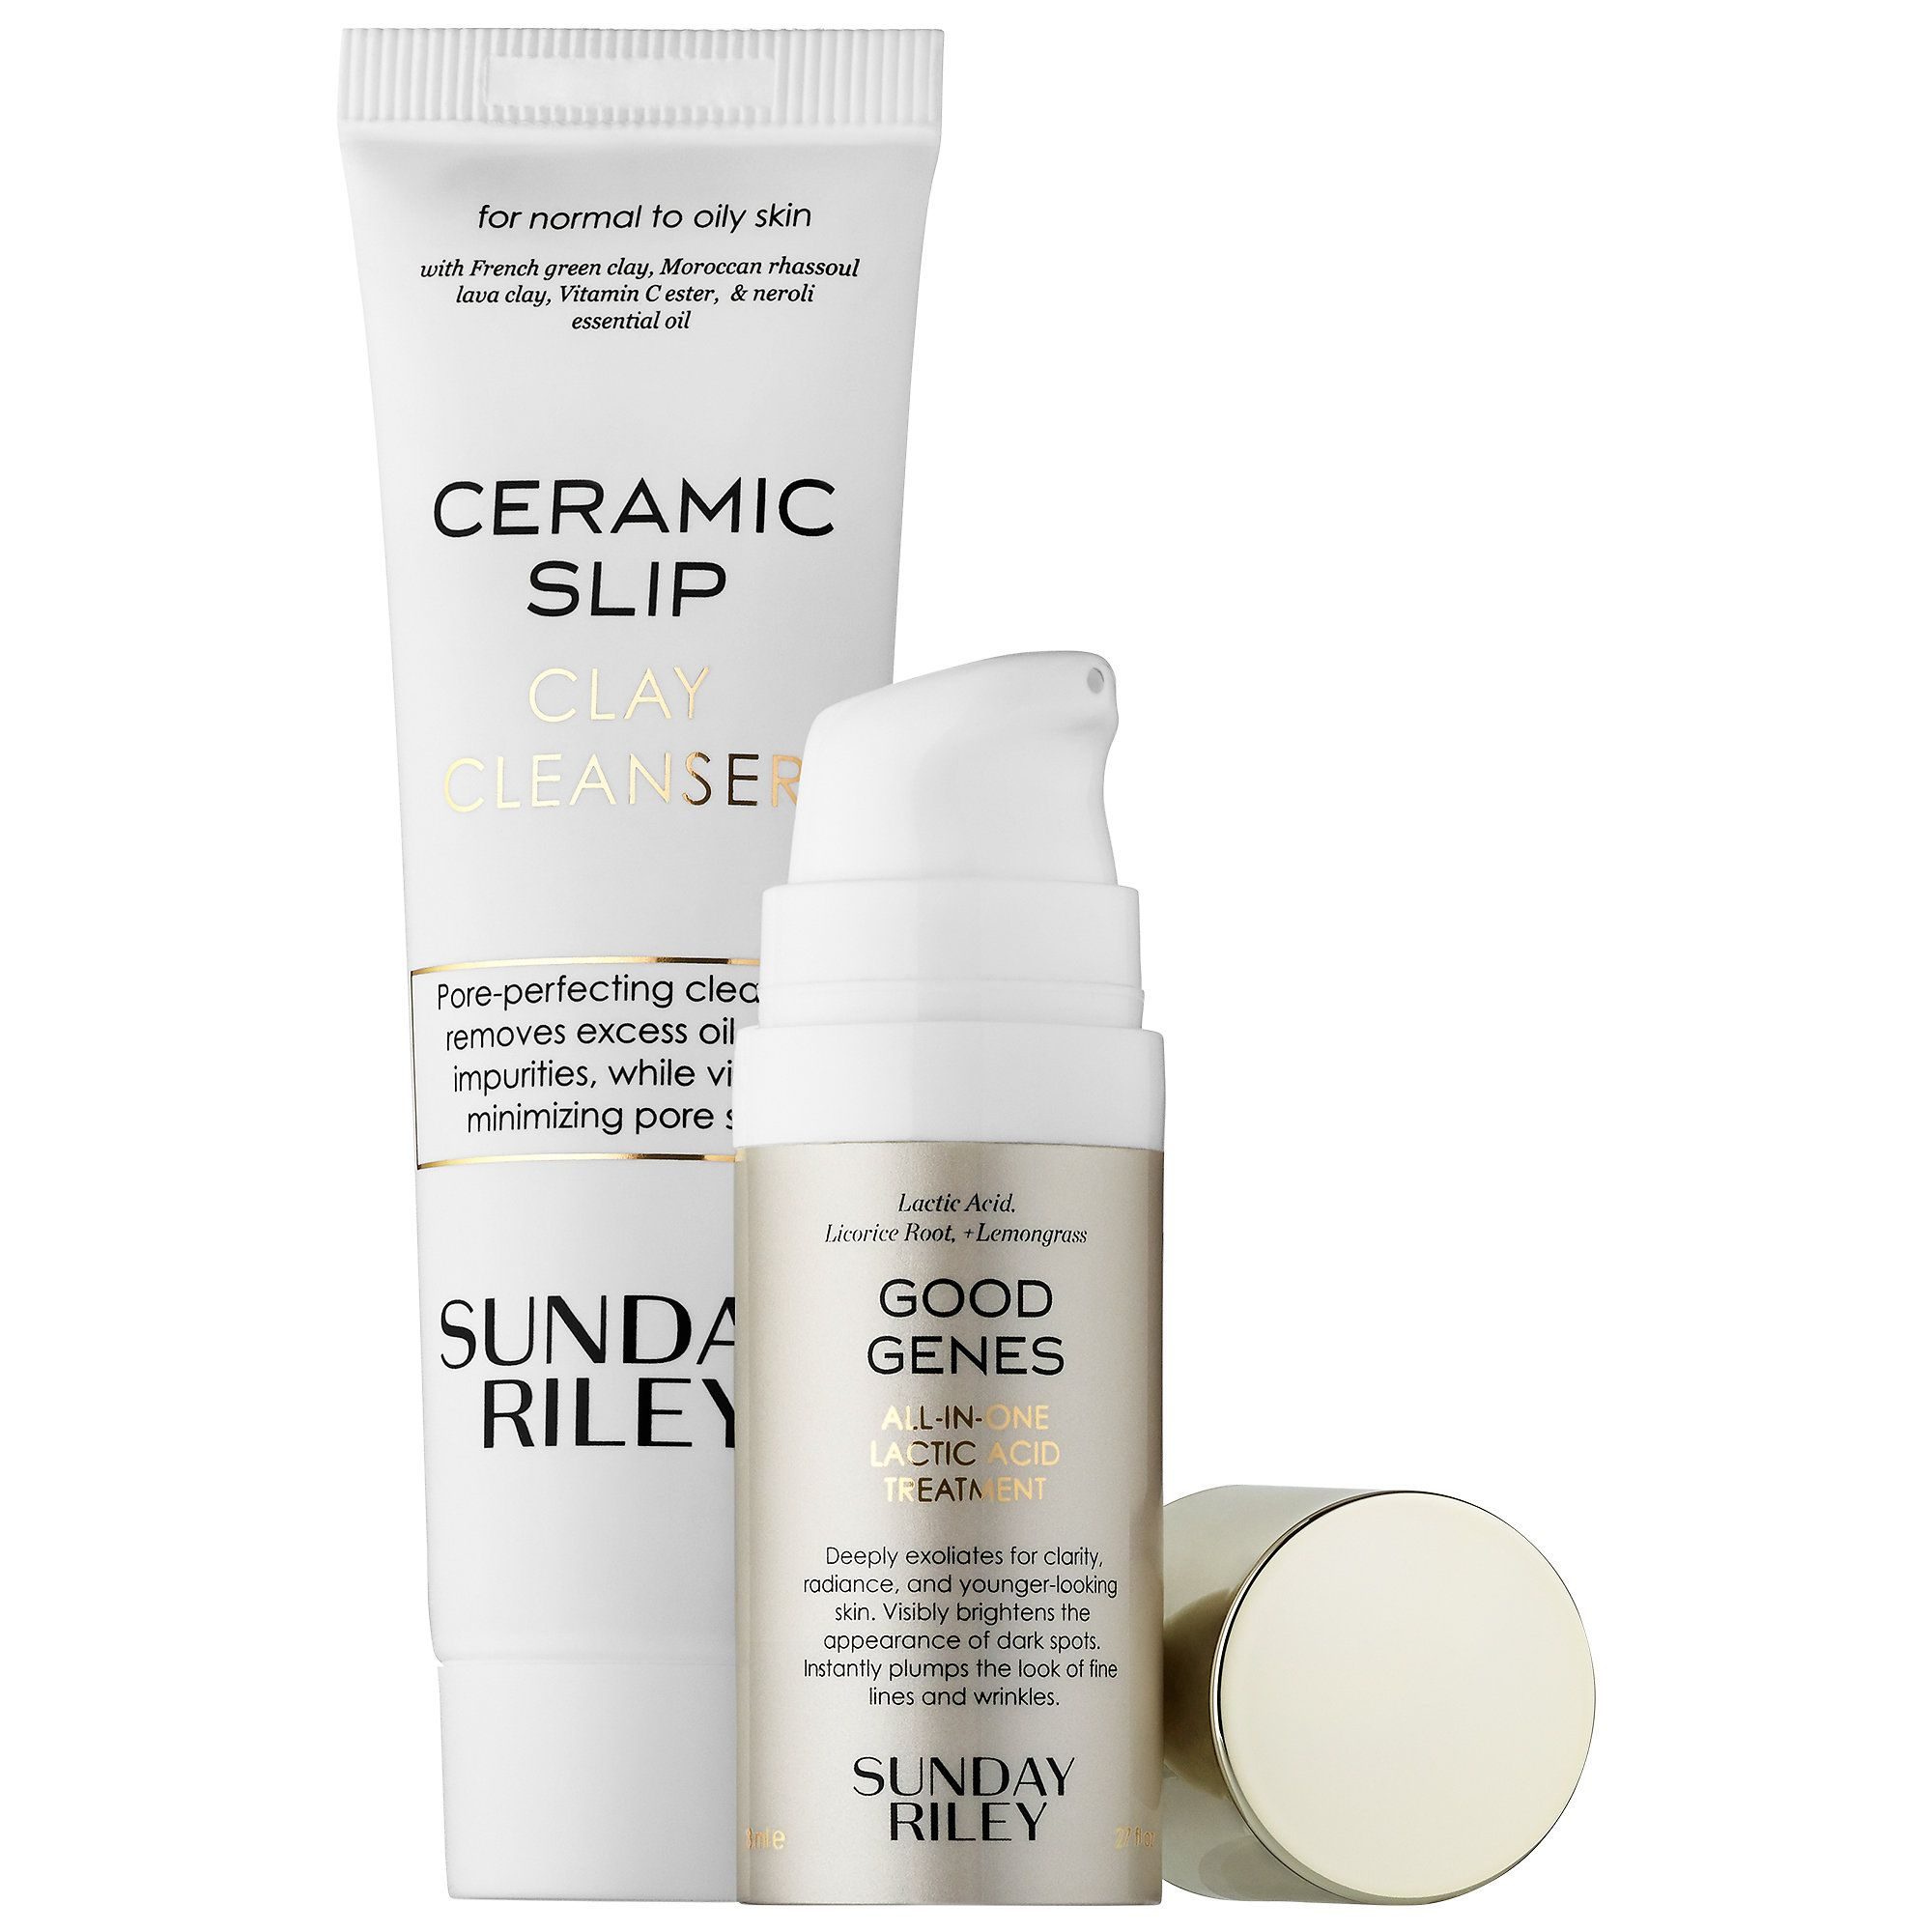 Sunday riley flash fix kit my facial cleansers pinterest